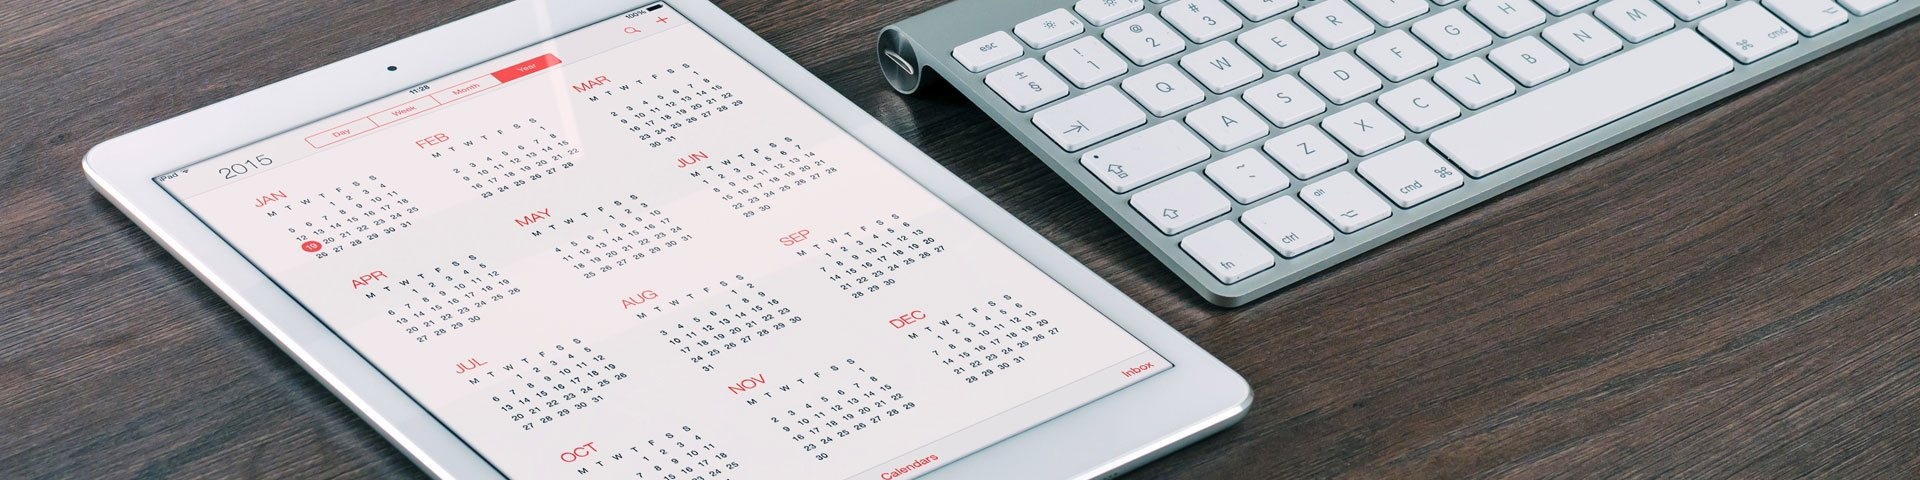 Add user testing event to participants' calendar